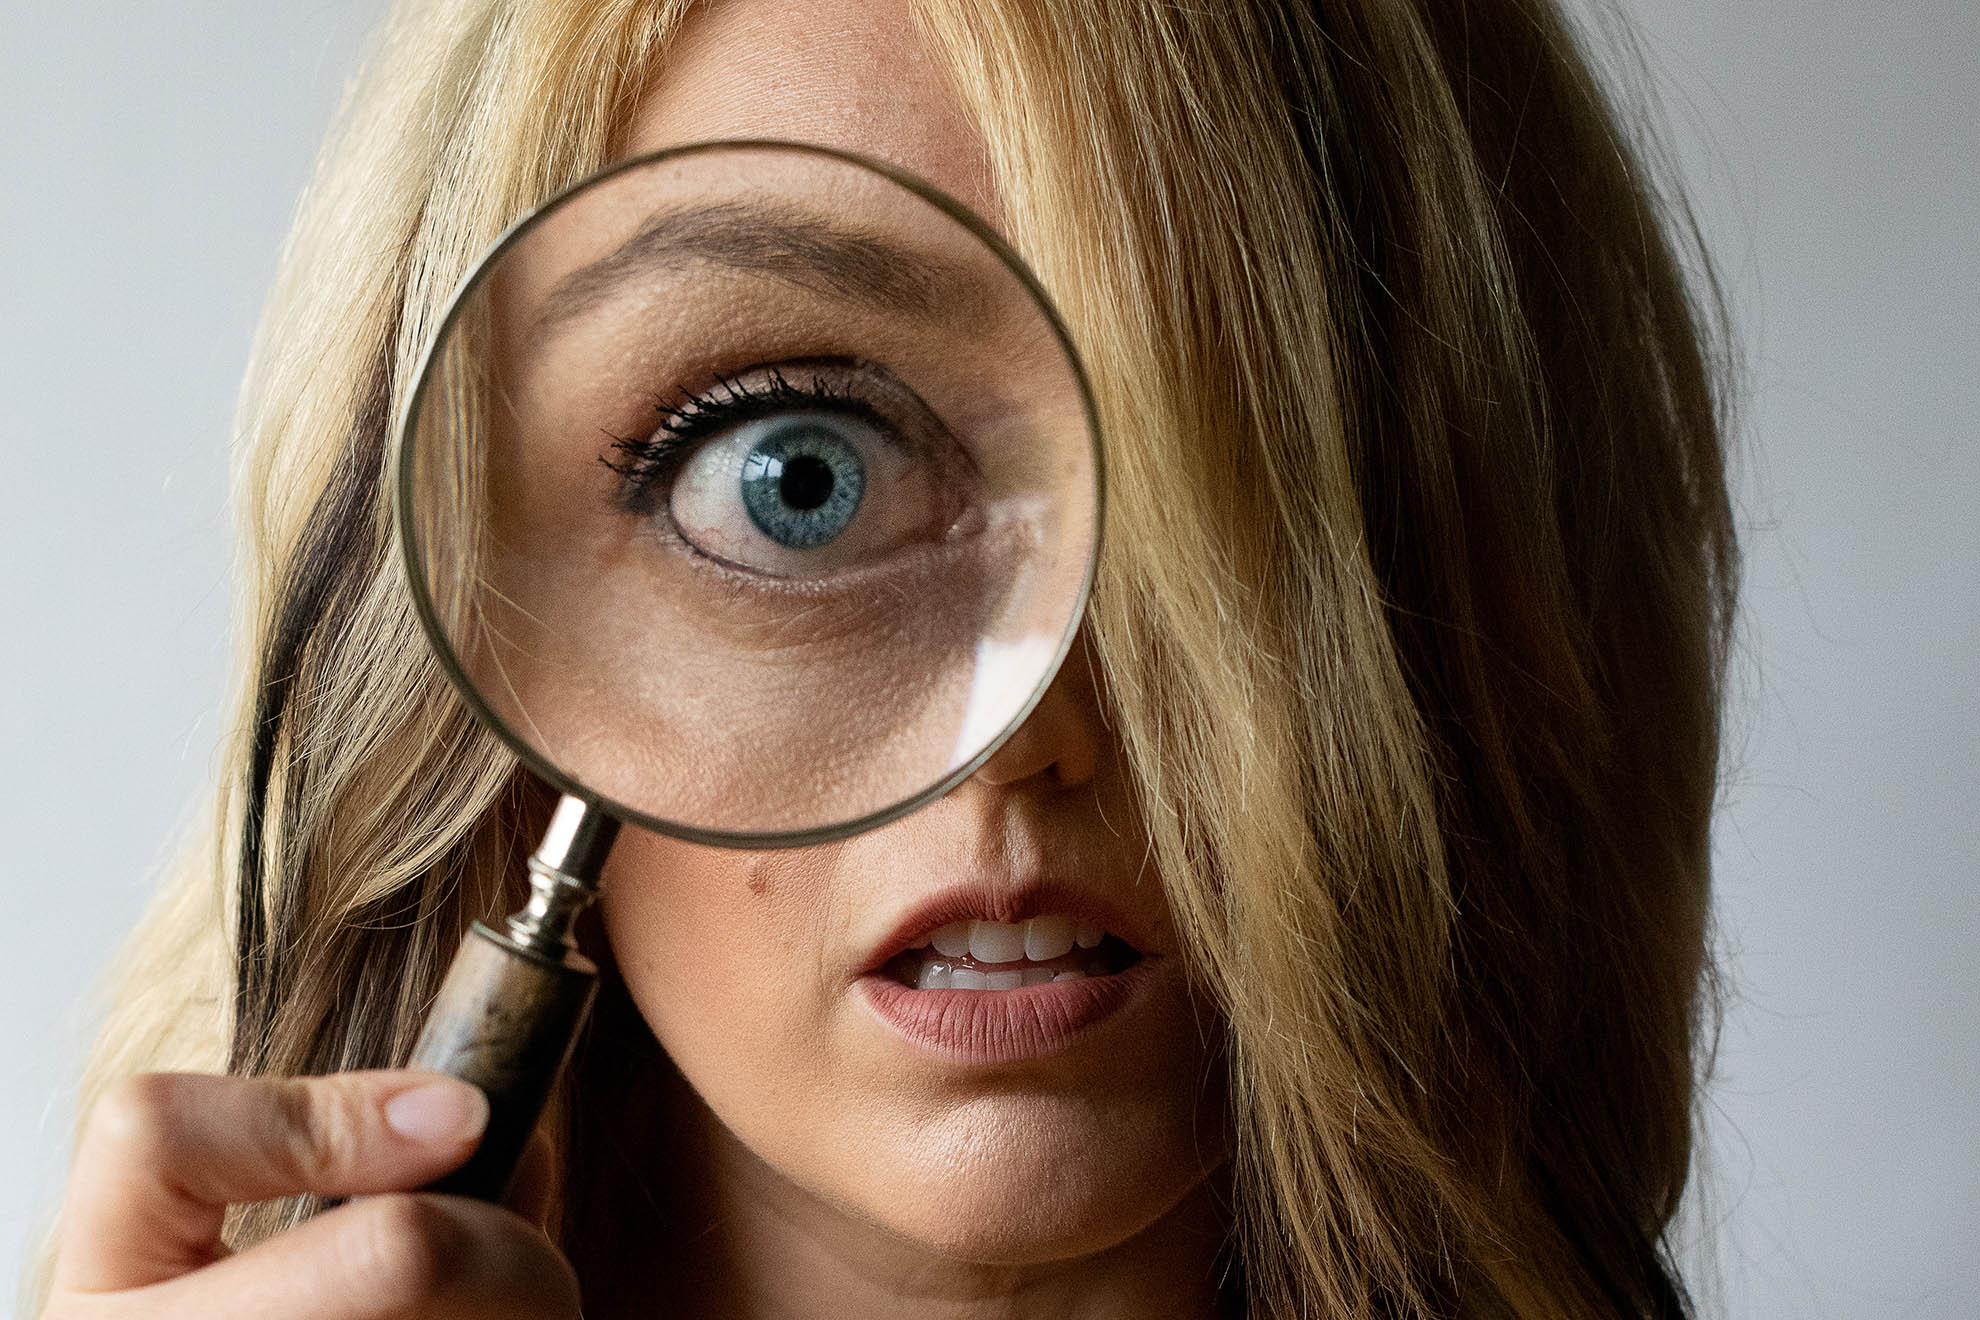 A woman's eye is greatly magnified when she holds up a magnifying glass for a self portrait